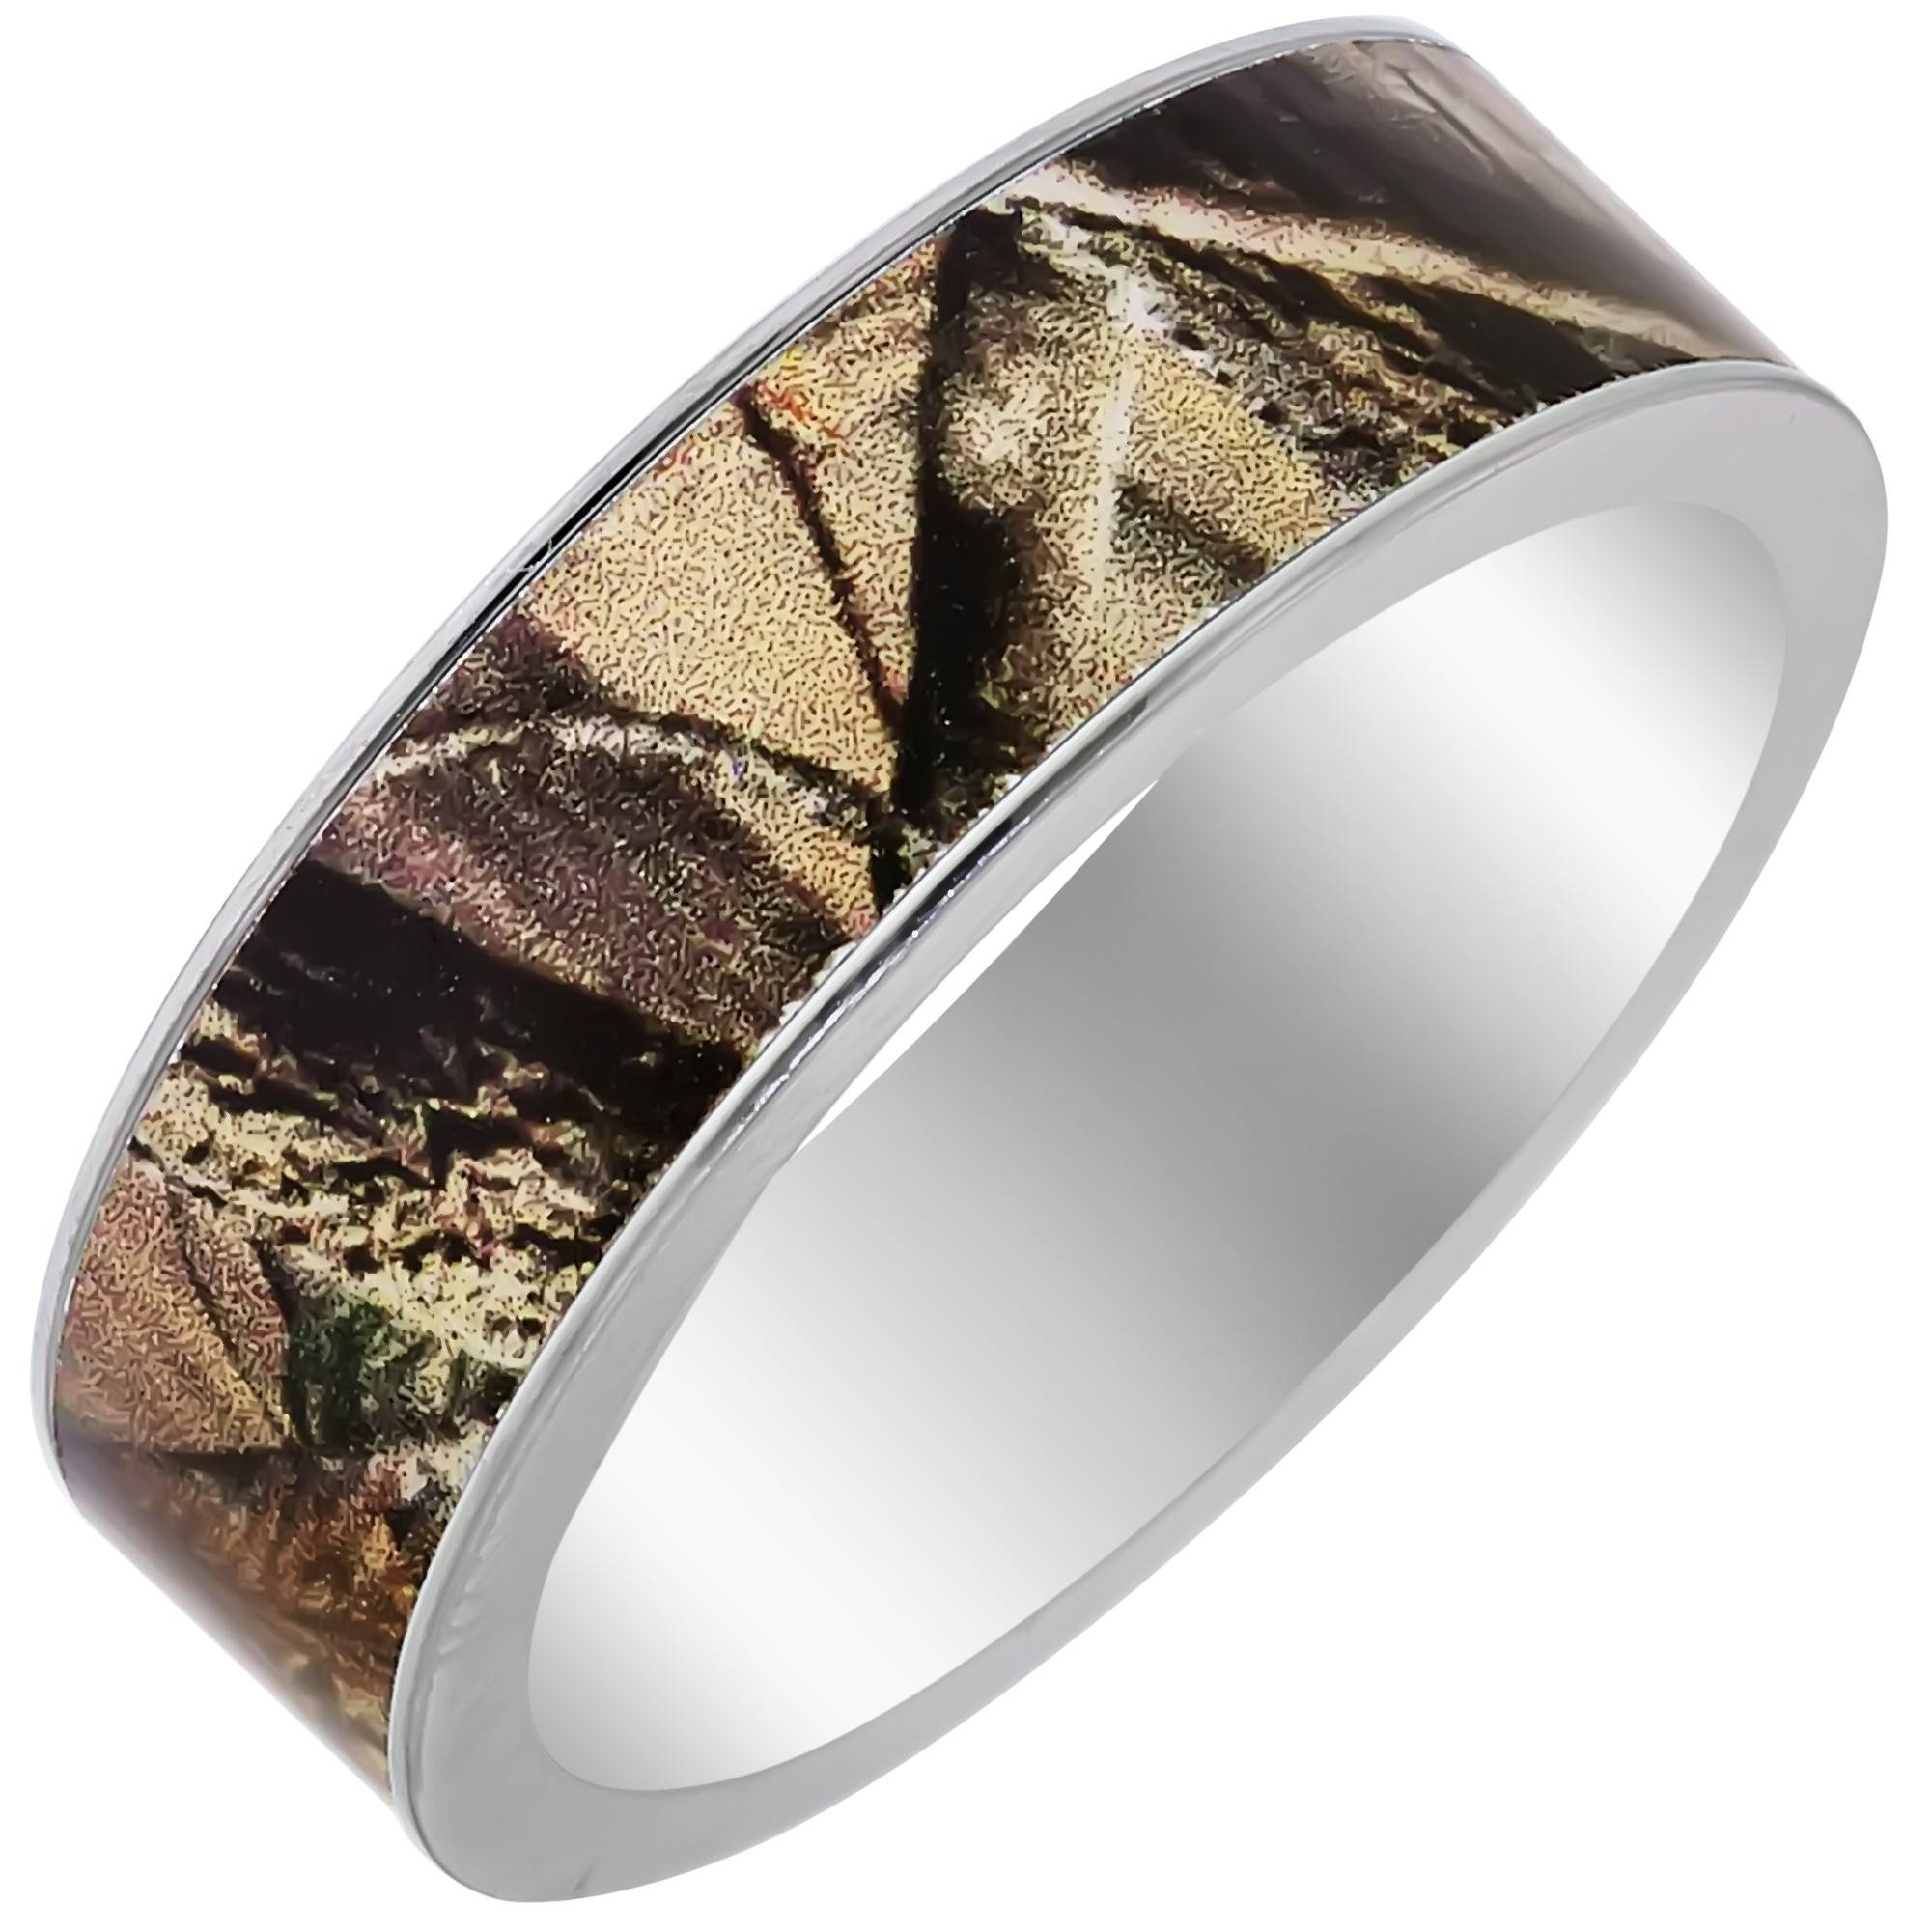 Mens Camouflage Wedding Band In Titanium (7Mm) Pertaining To Titanium Camo Wedding Rings (View 9 of 15)